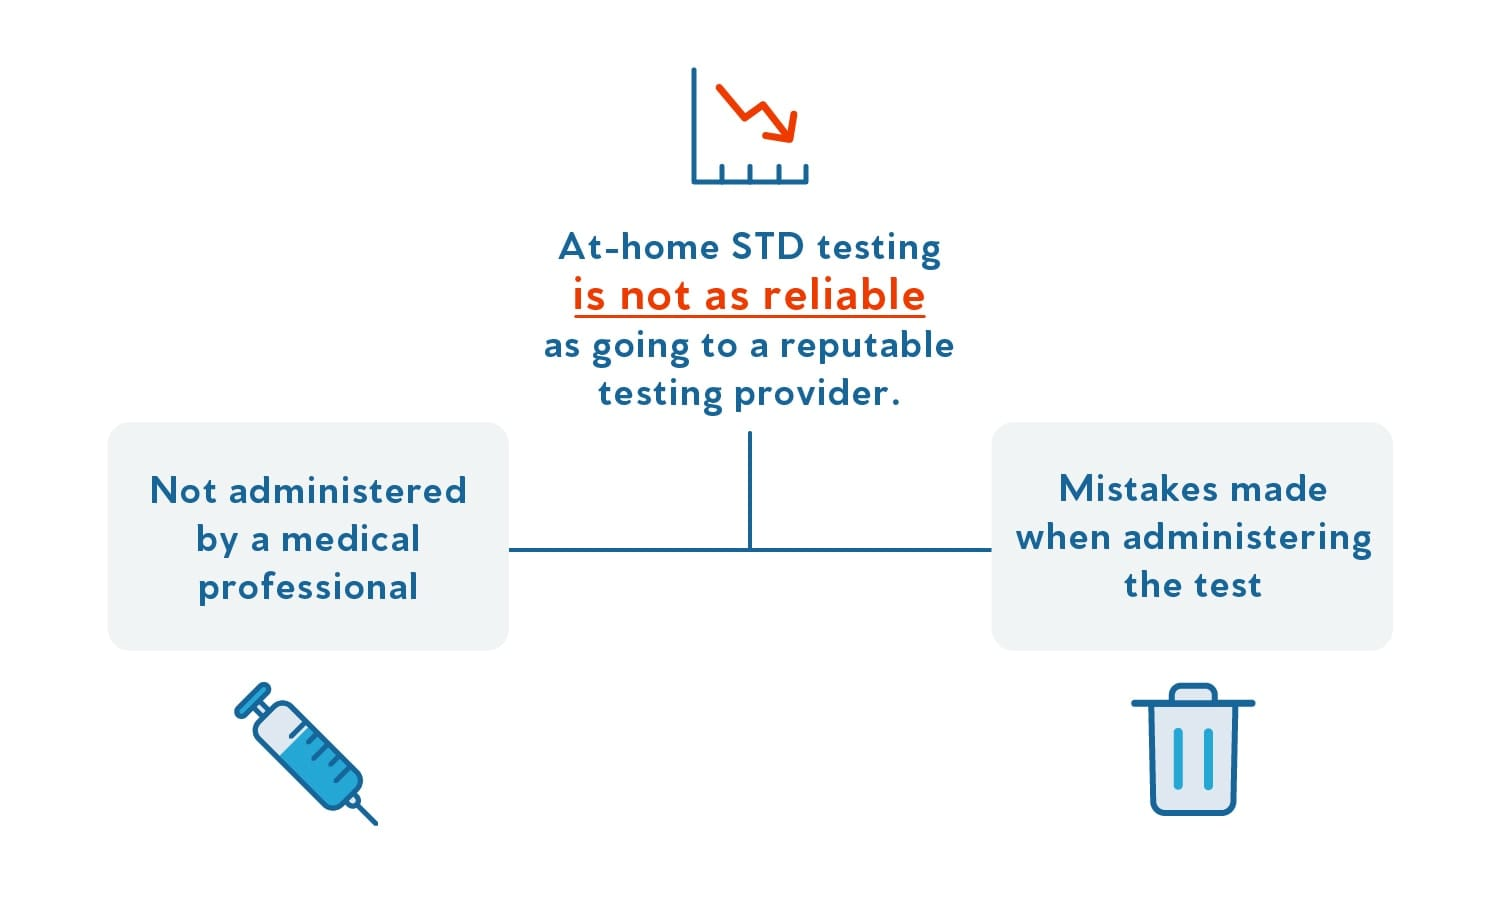 A graphic that illustrates why at-home STD testing is less reliable.